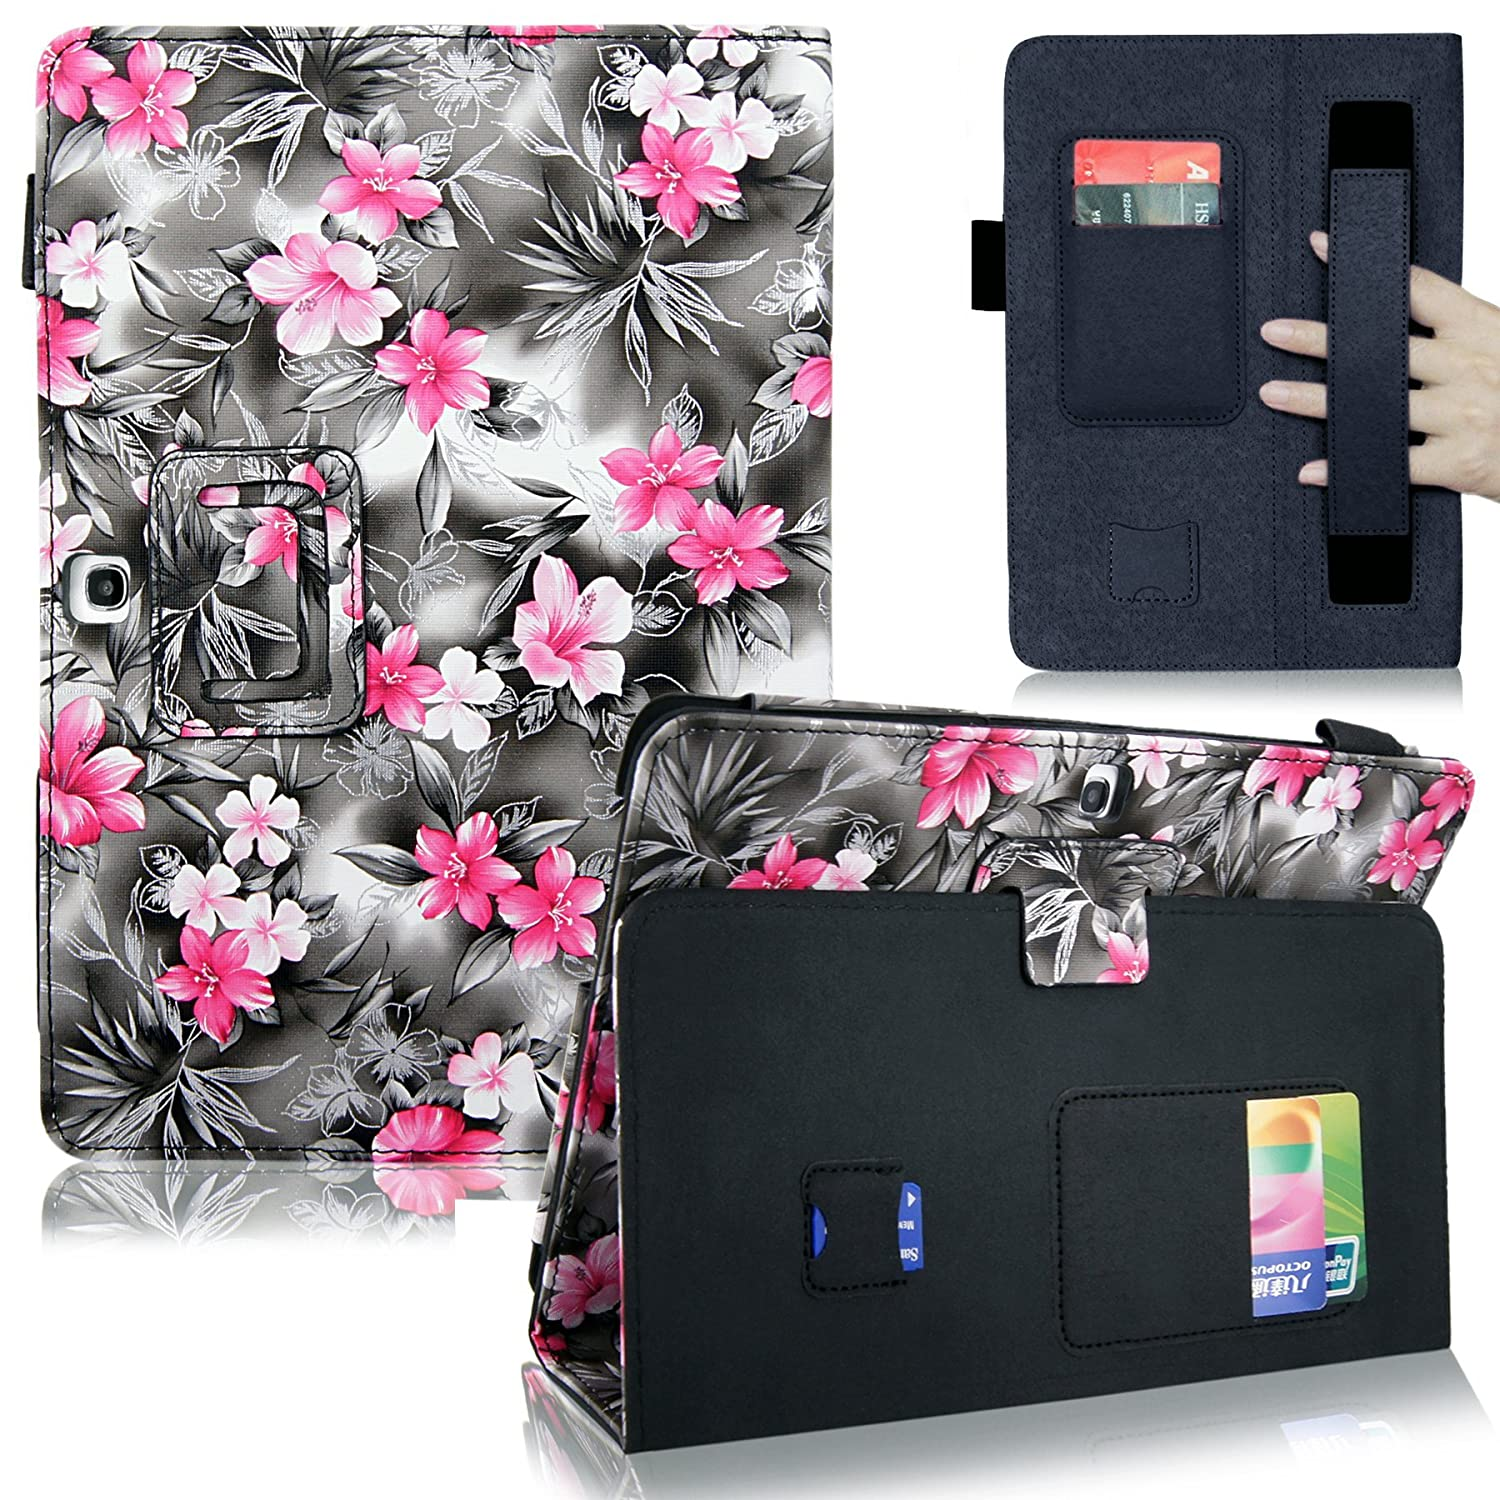 Cellularvilla Case for Samsung Galaxy tab 3 7 8 Gen Pu Leather Elastic Hand Strap Flip Folio Stand Case Cover + Stylus Touch Pen case for supra m141g 10 1 inch pu leather cover stand folio universal case 10 tablet accessories center flim pen kf553c